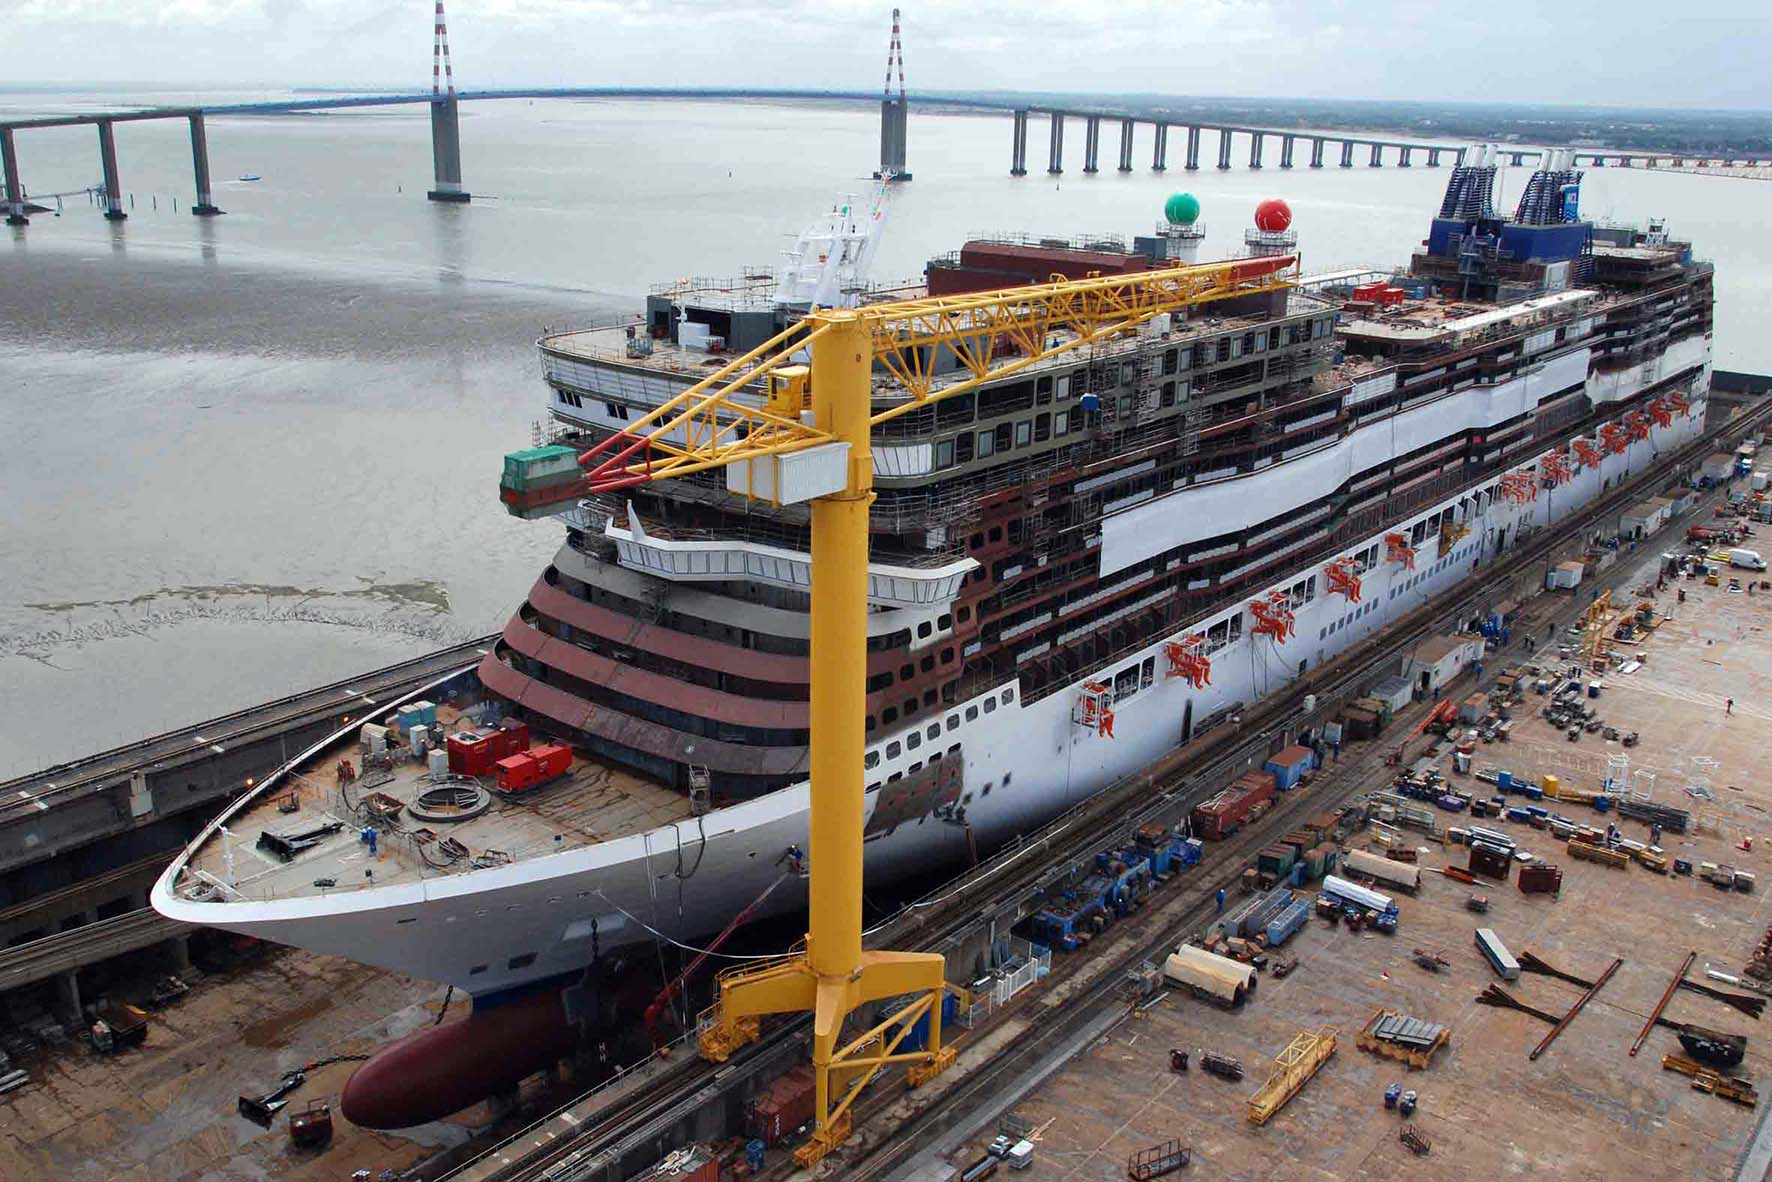 cantiere navale stx francia